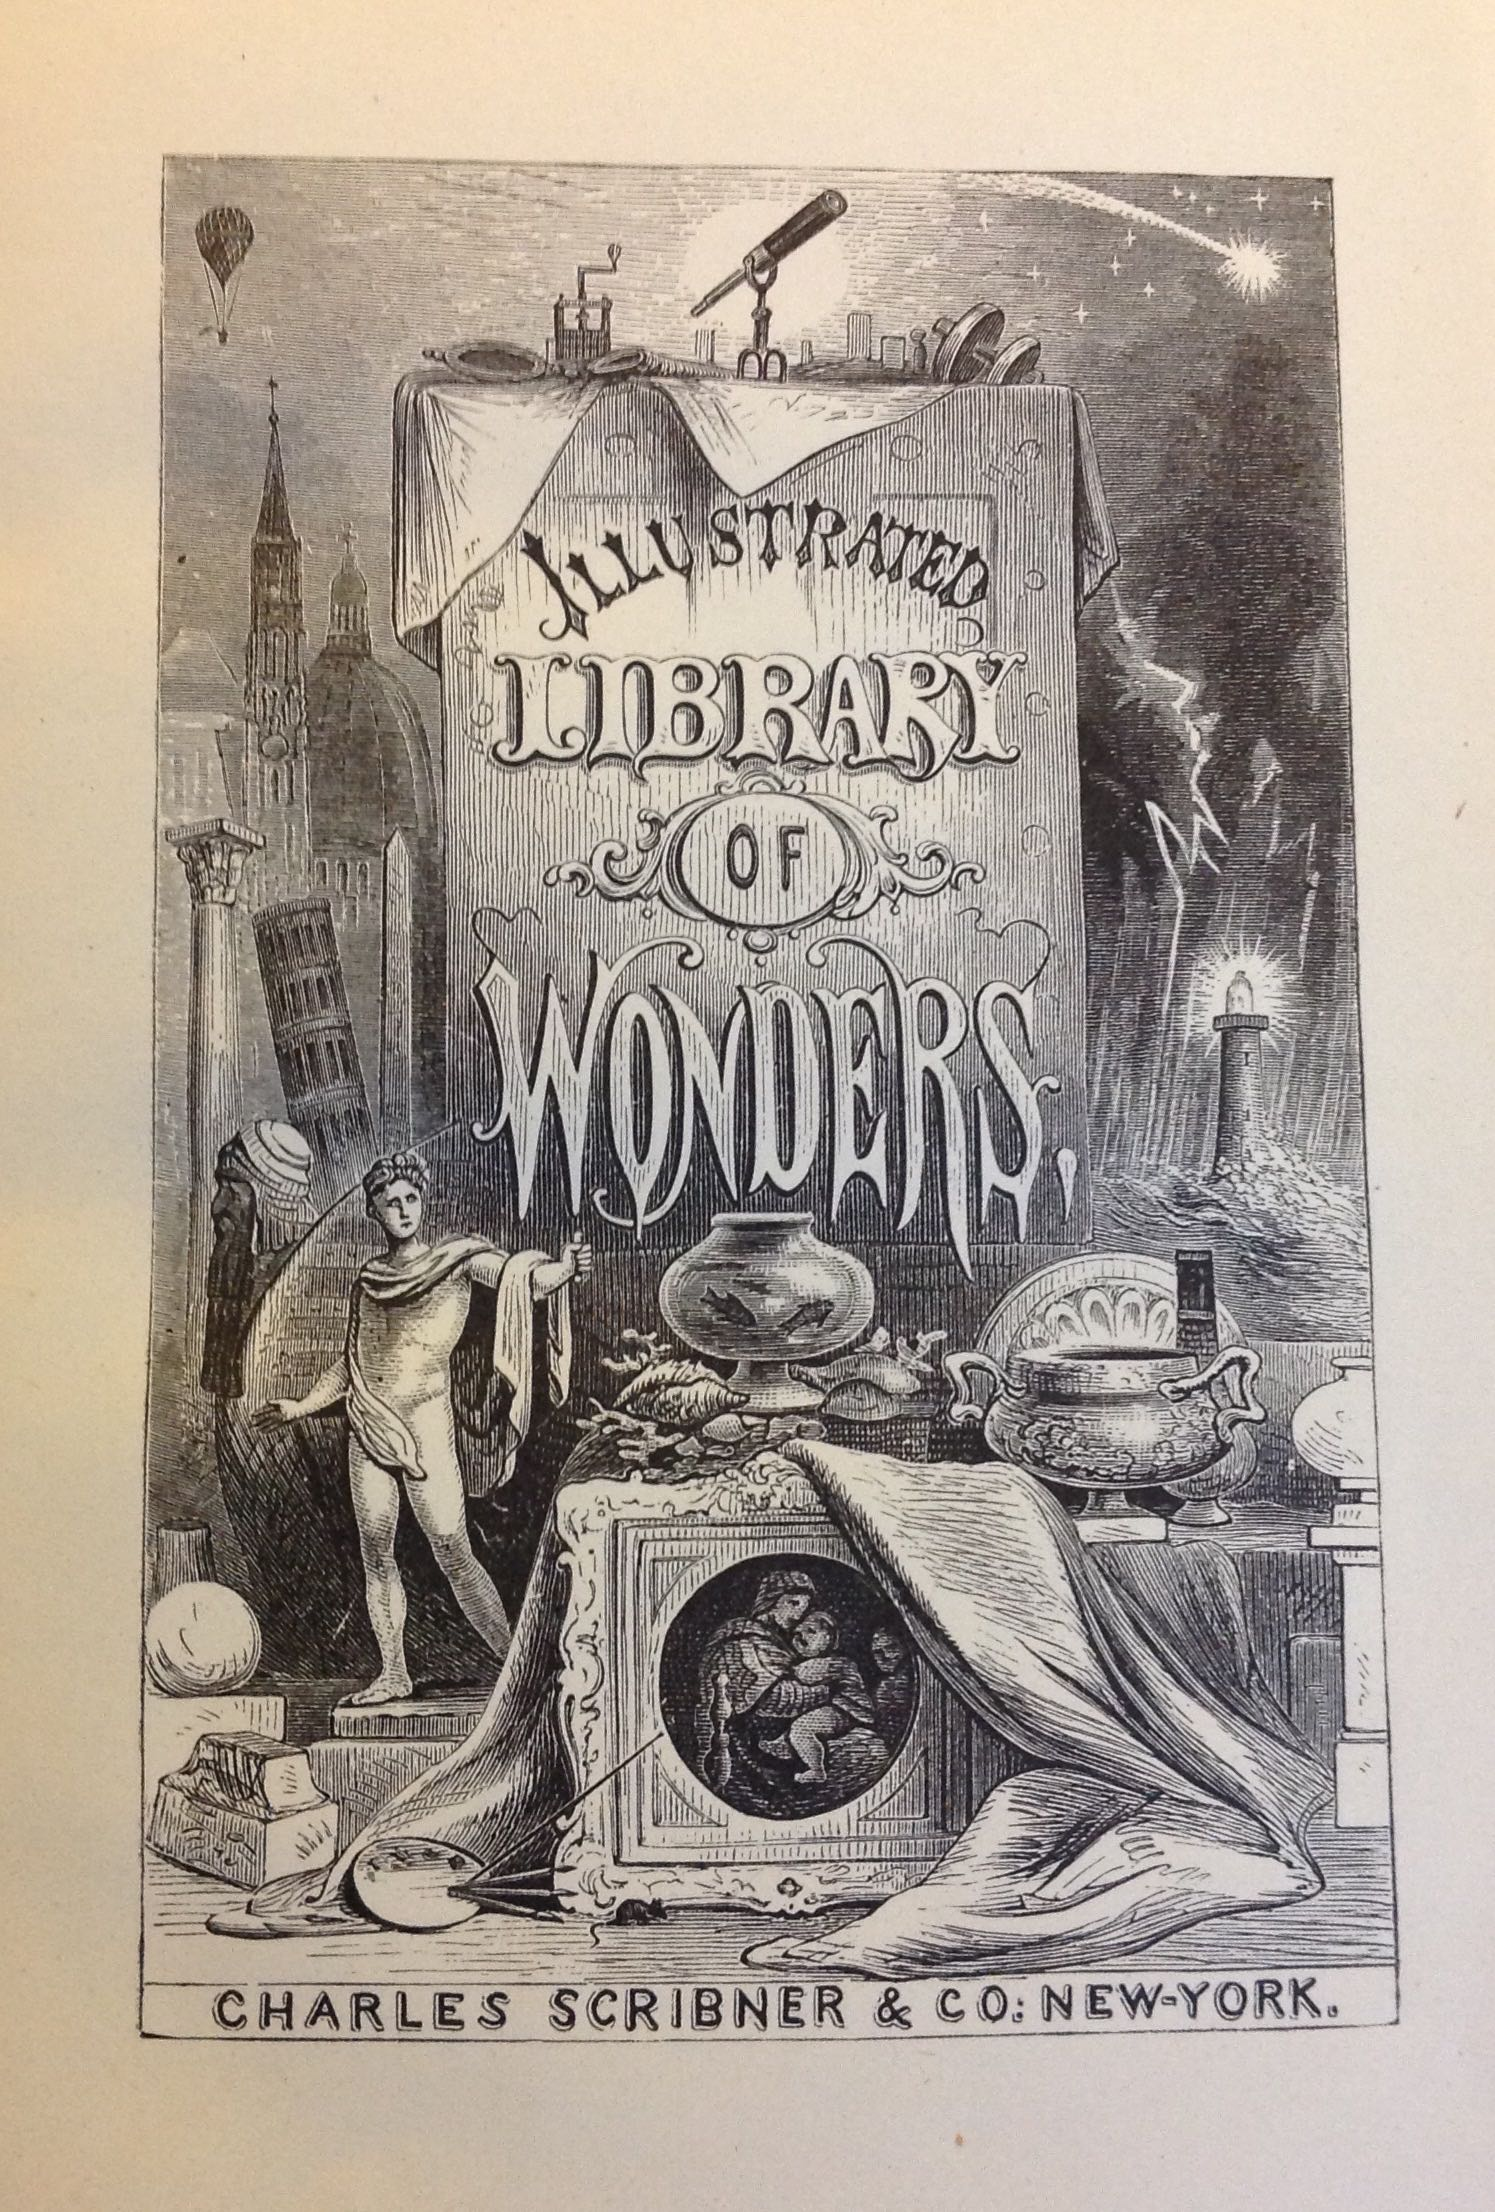 """Caitlin: This """"Library of Wonders"""" illustration in Wonders of Electricity. I like the spooky vibes. It would be perfect to post in October. Libraries are certainly full of """"wonders""""! You never know what hidden gem you might find inside a book!"""